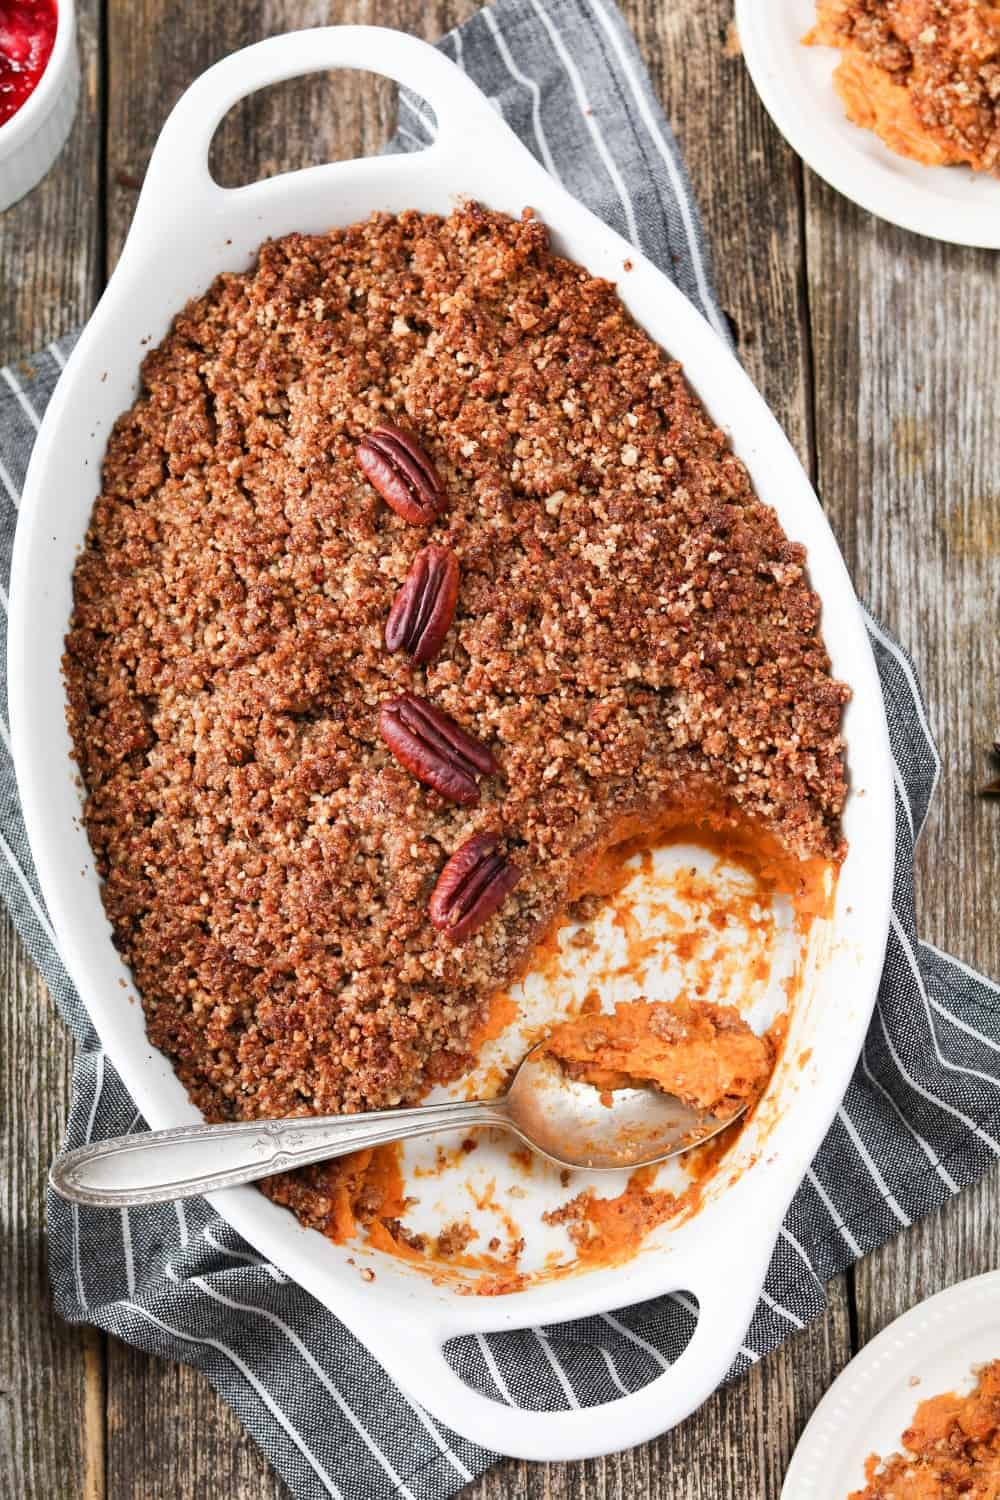 Vegan Sweet Potato Casserole with streusel topping